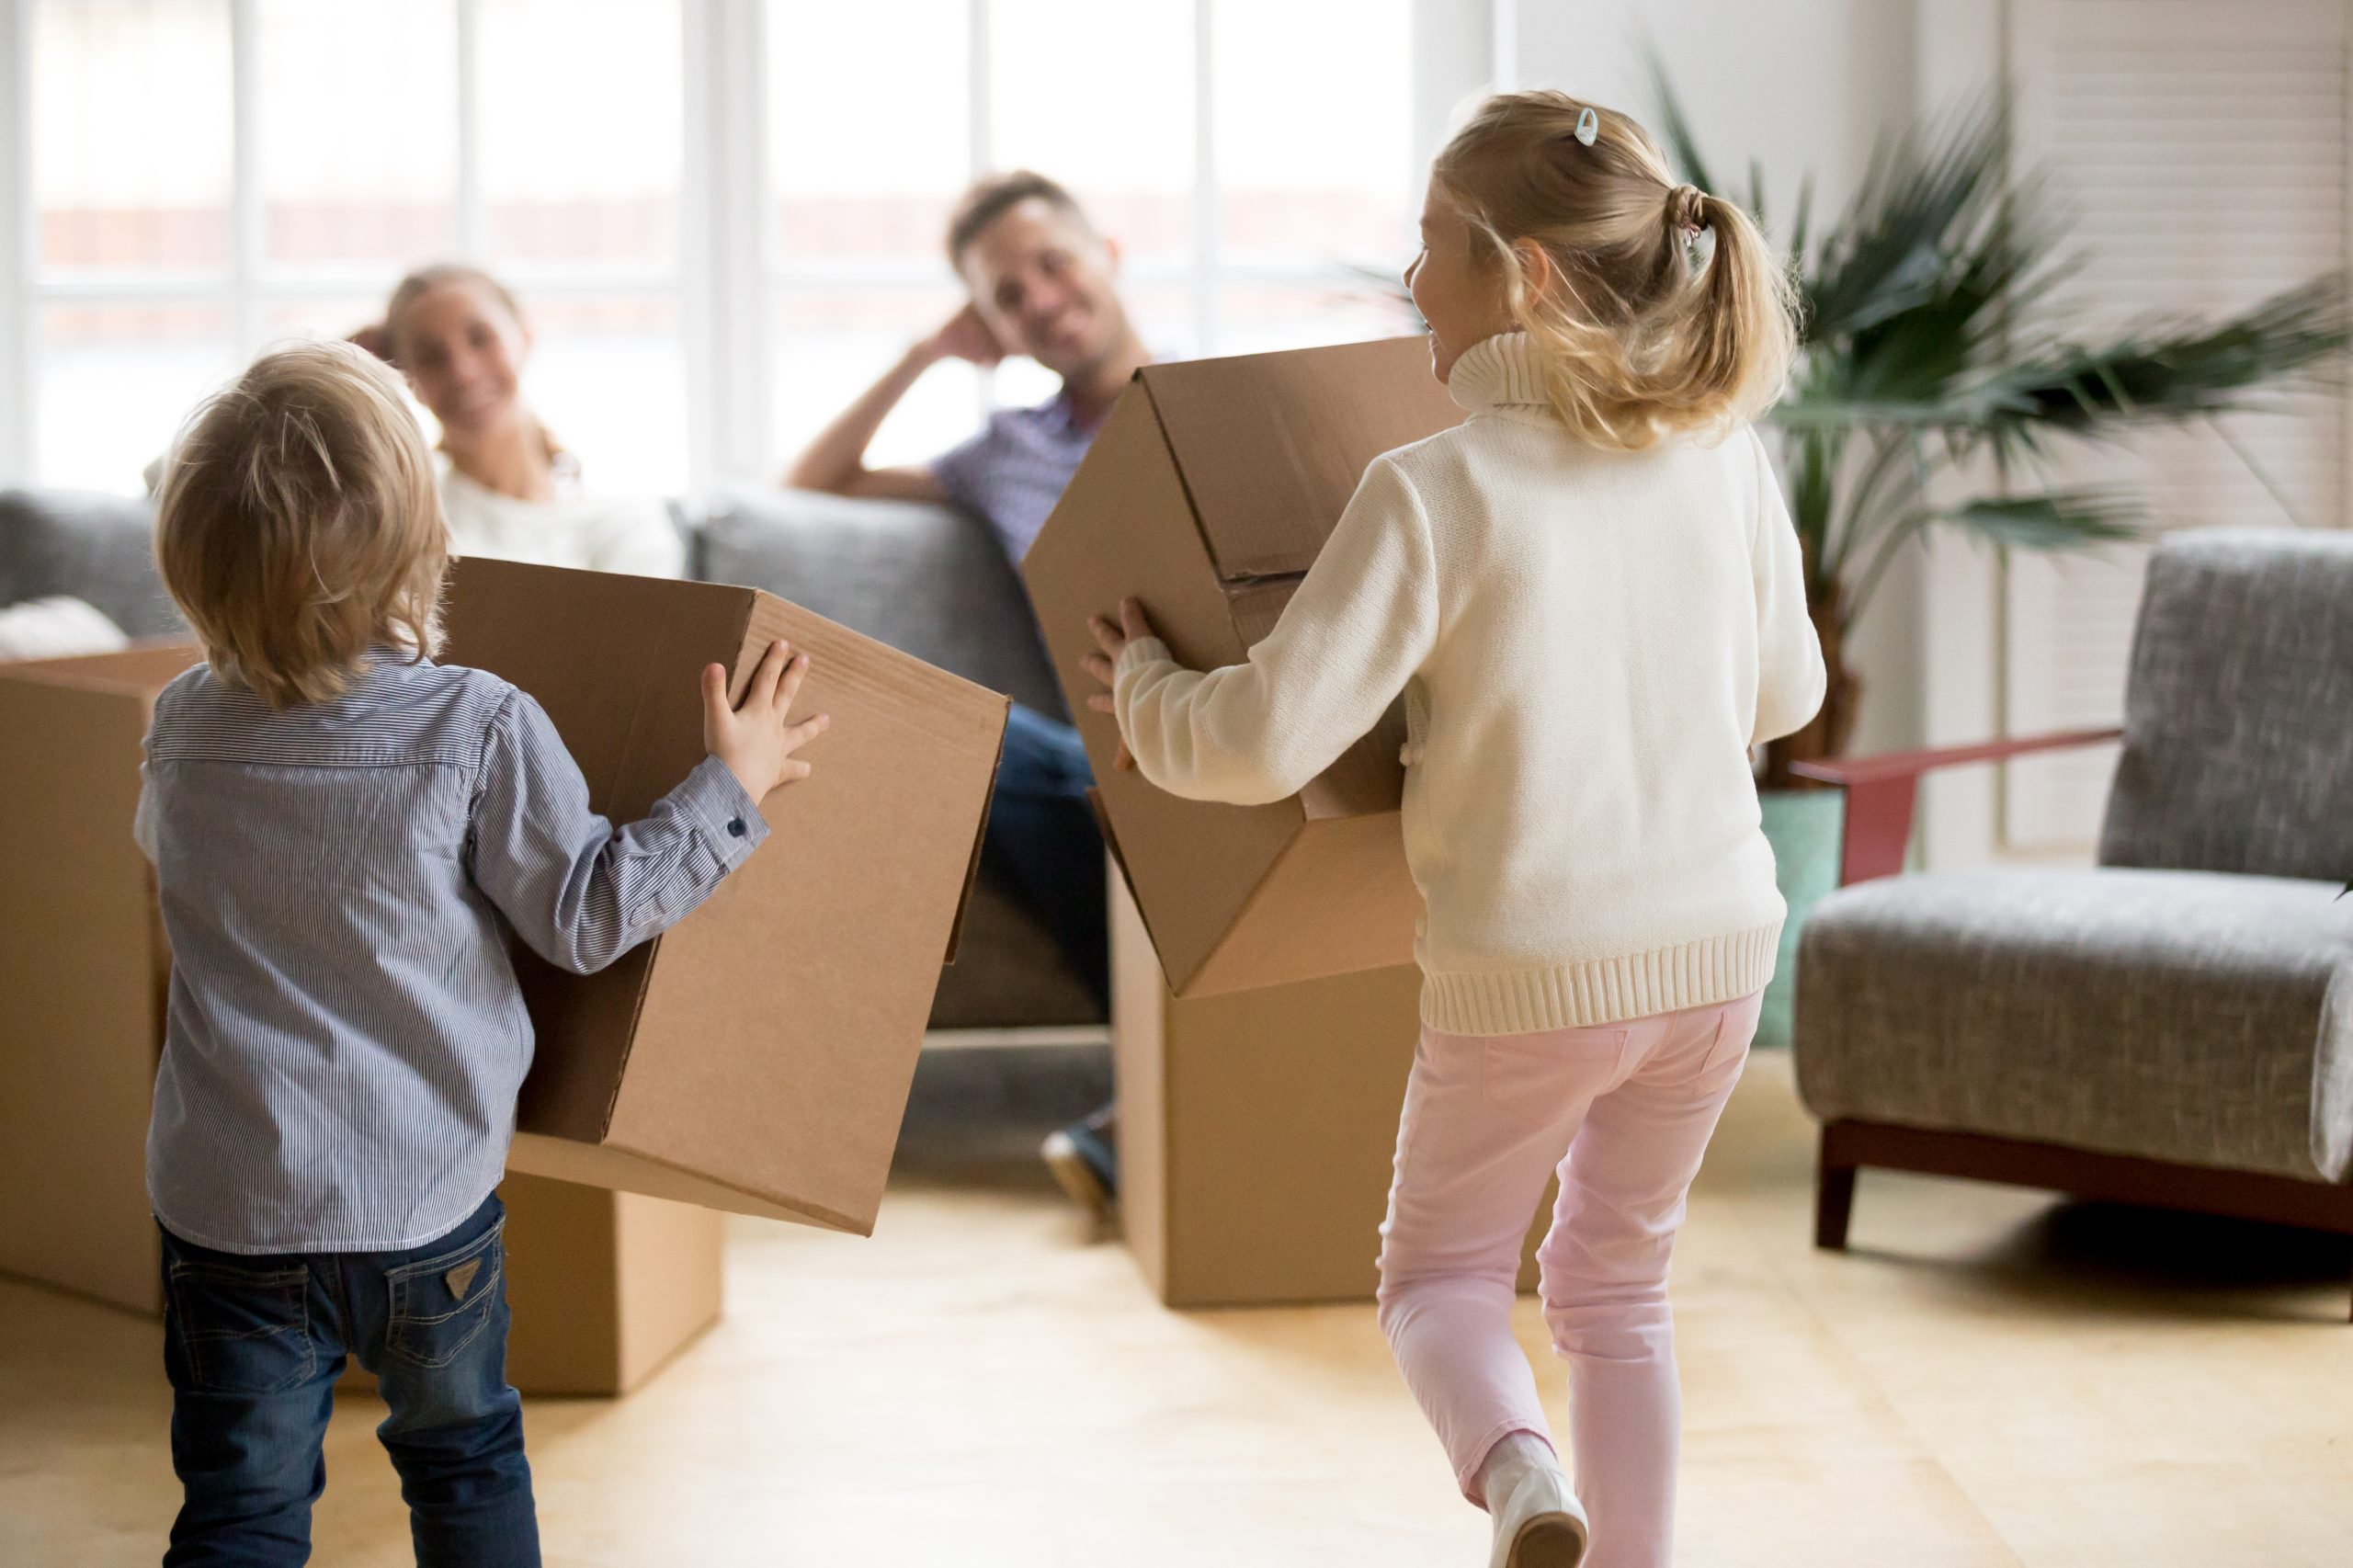 Rear view at kids playing with boxes on moving day, small brother and sister running holding belongings packing unpacking in new home, happy playful children having fun together enjoying relocation